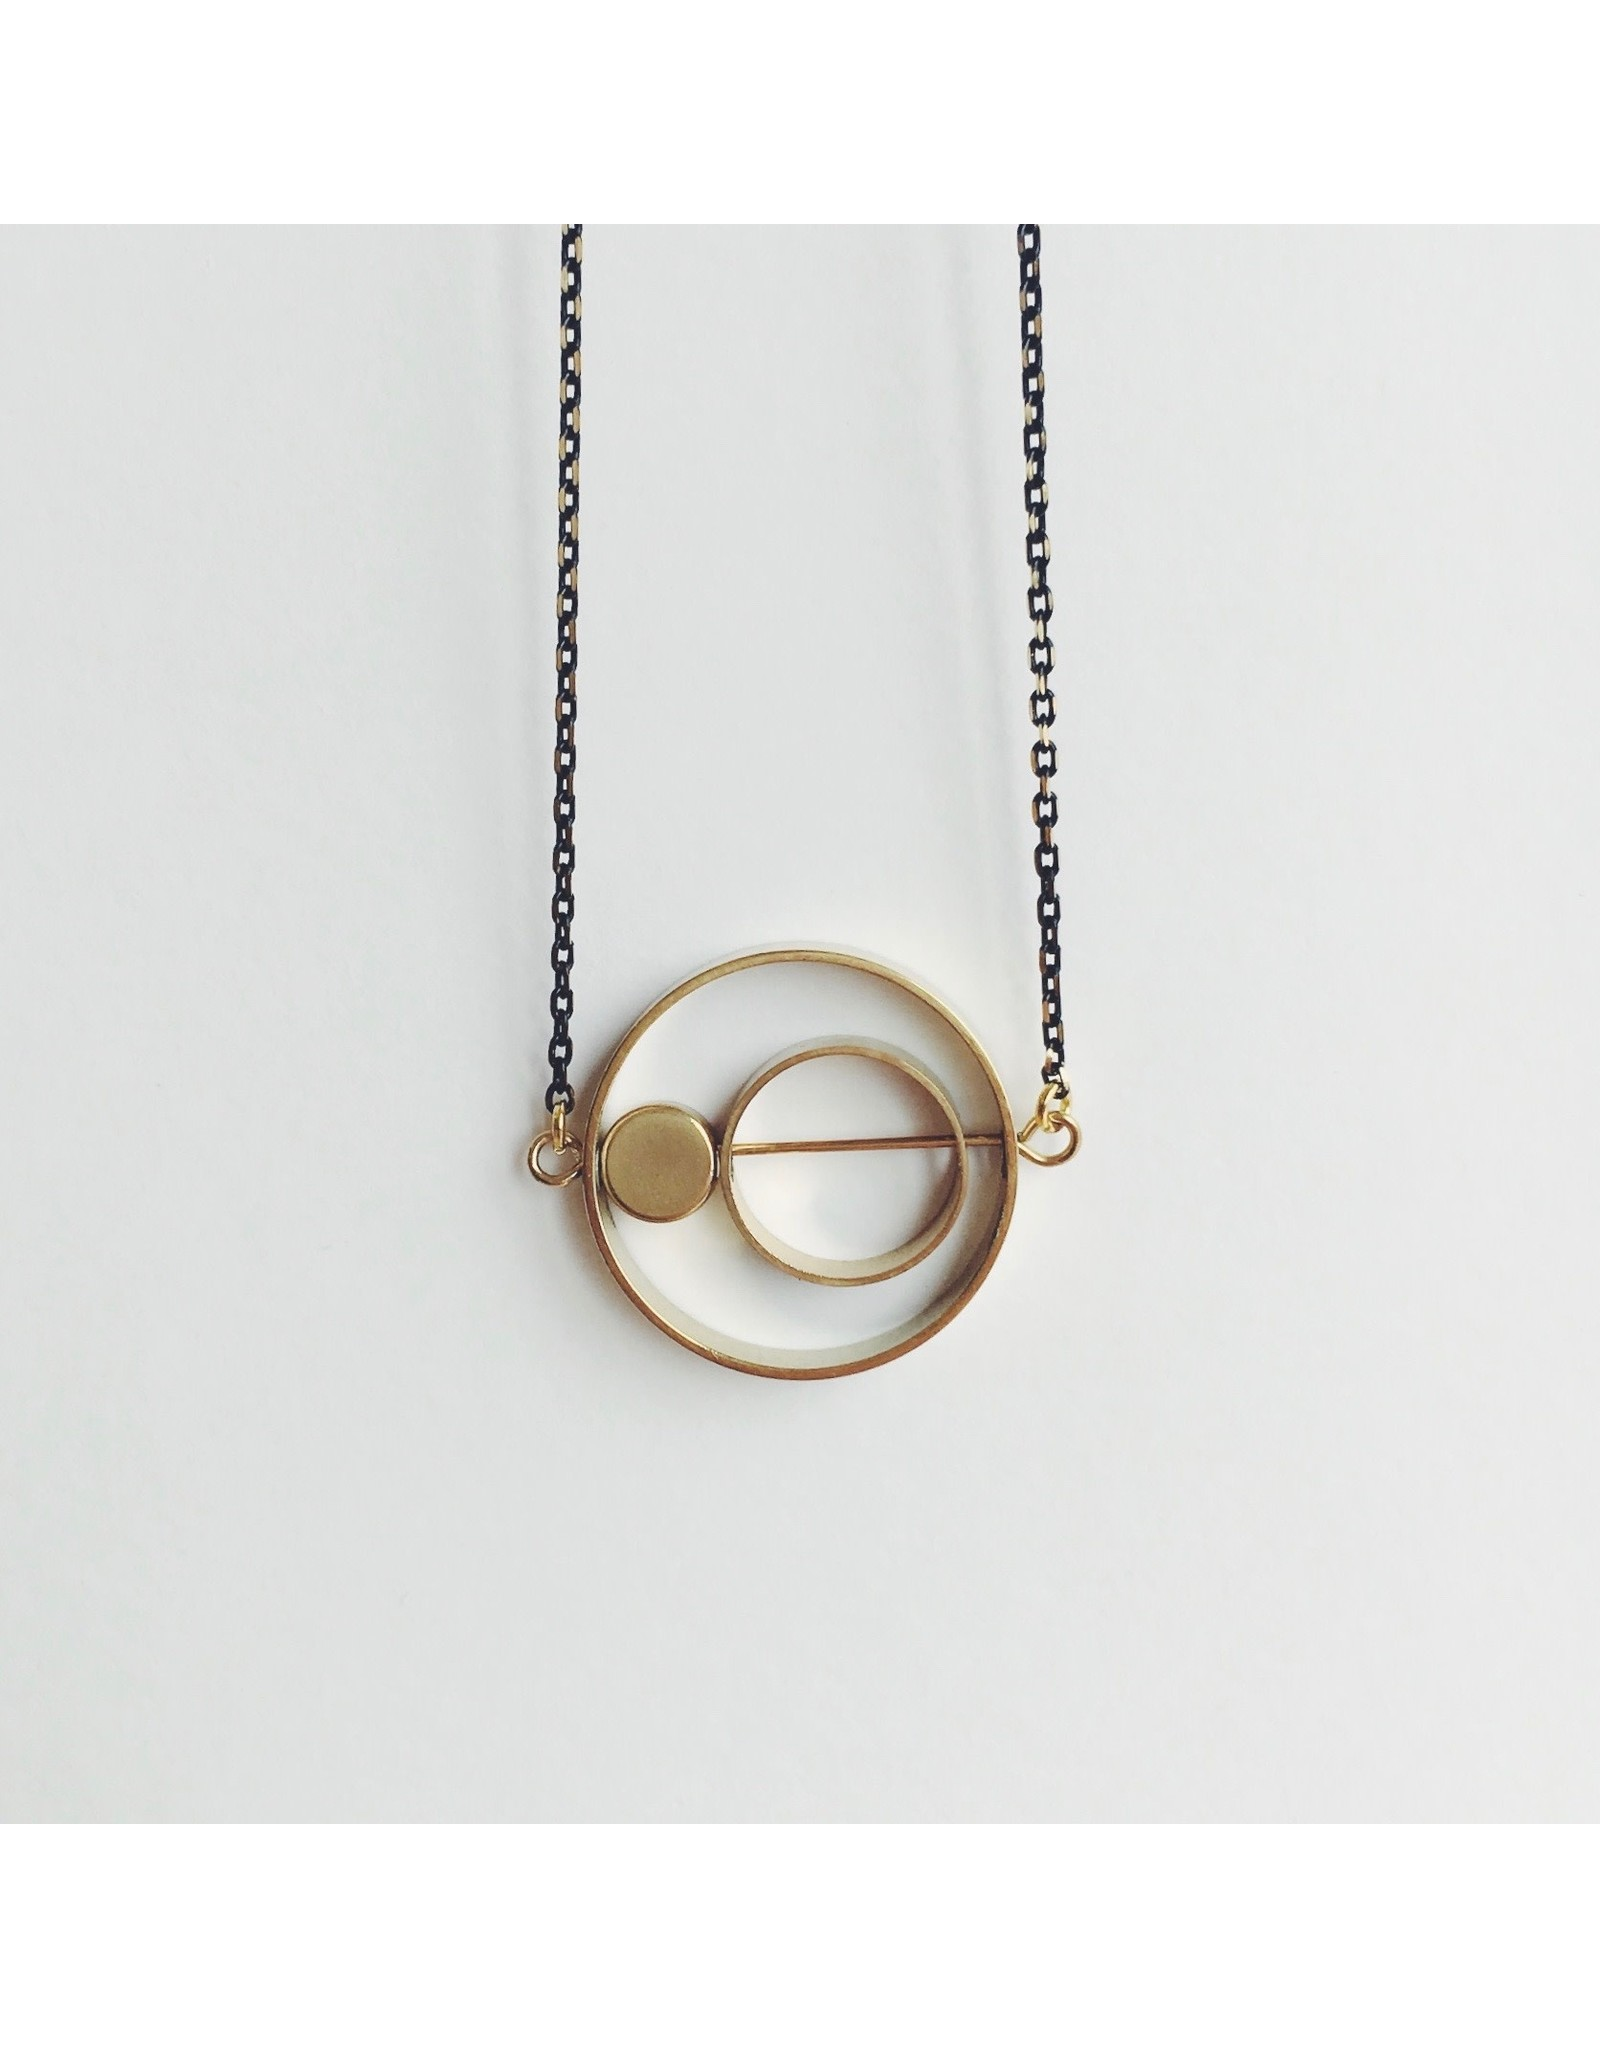 Necklace Brass Rings Within Rings